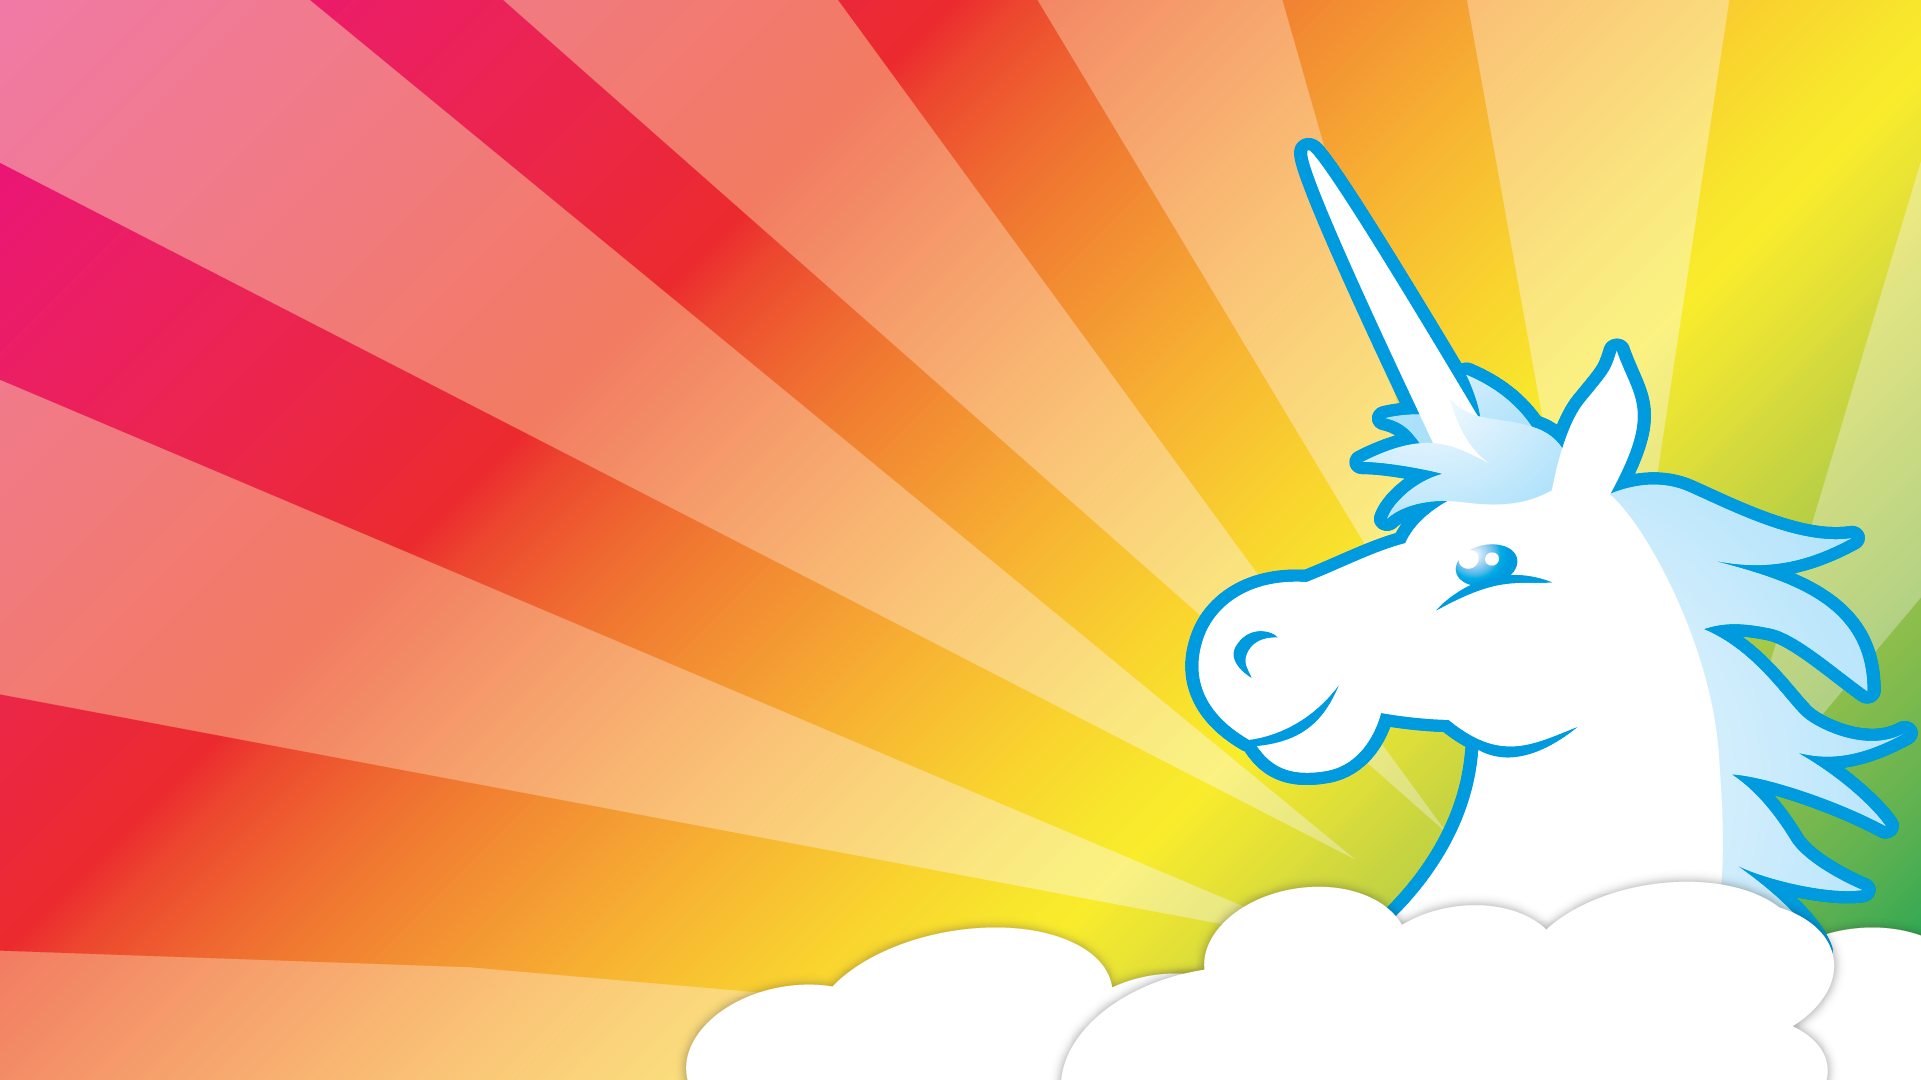 Photo of Unicorn Pictures HD (p.27404736) - BsnSCB